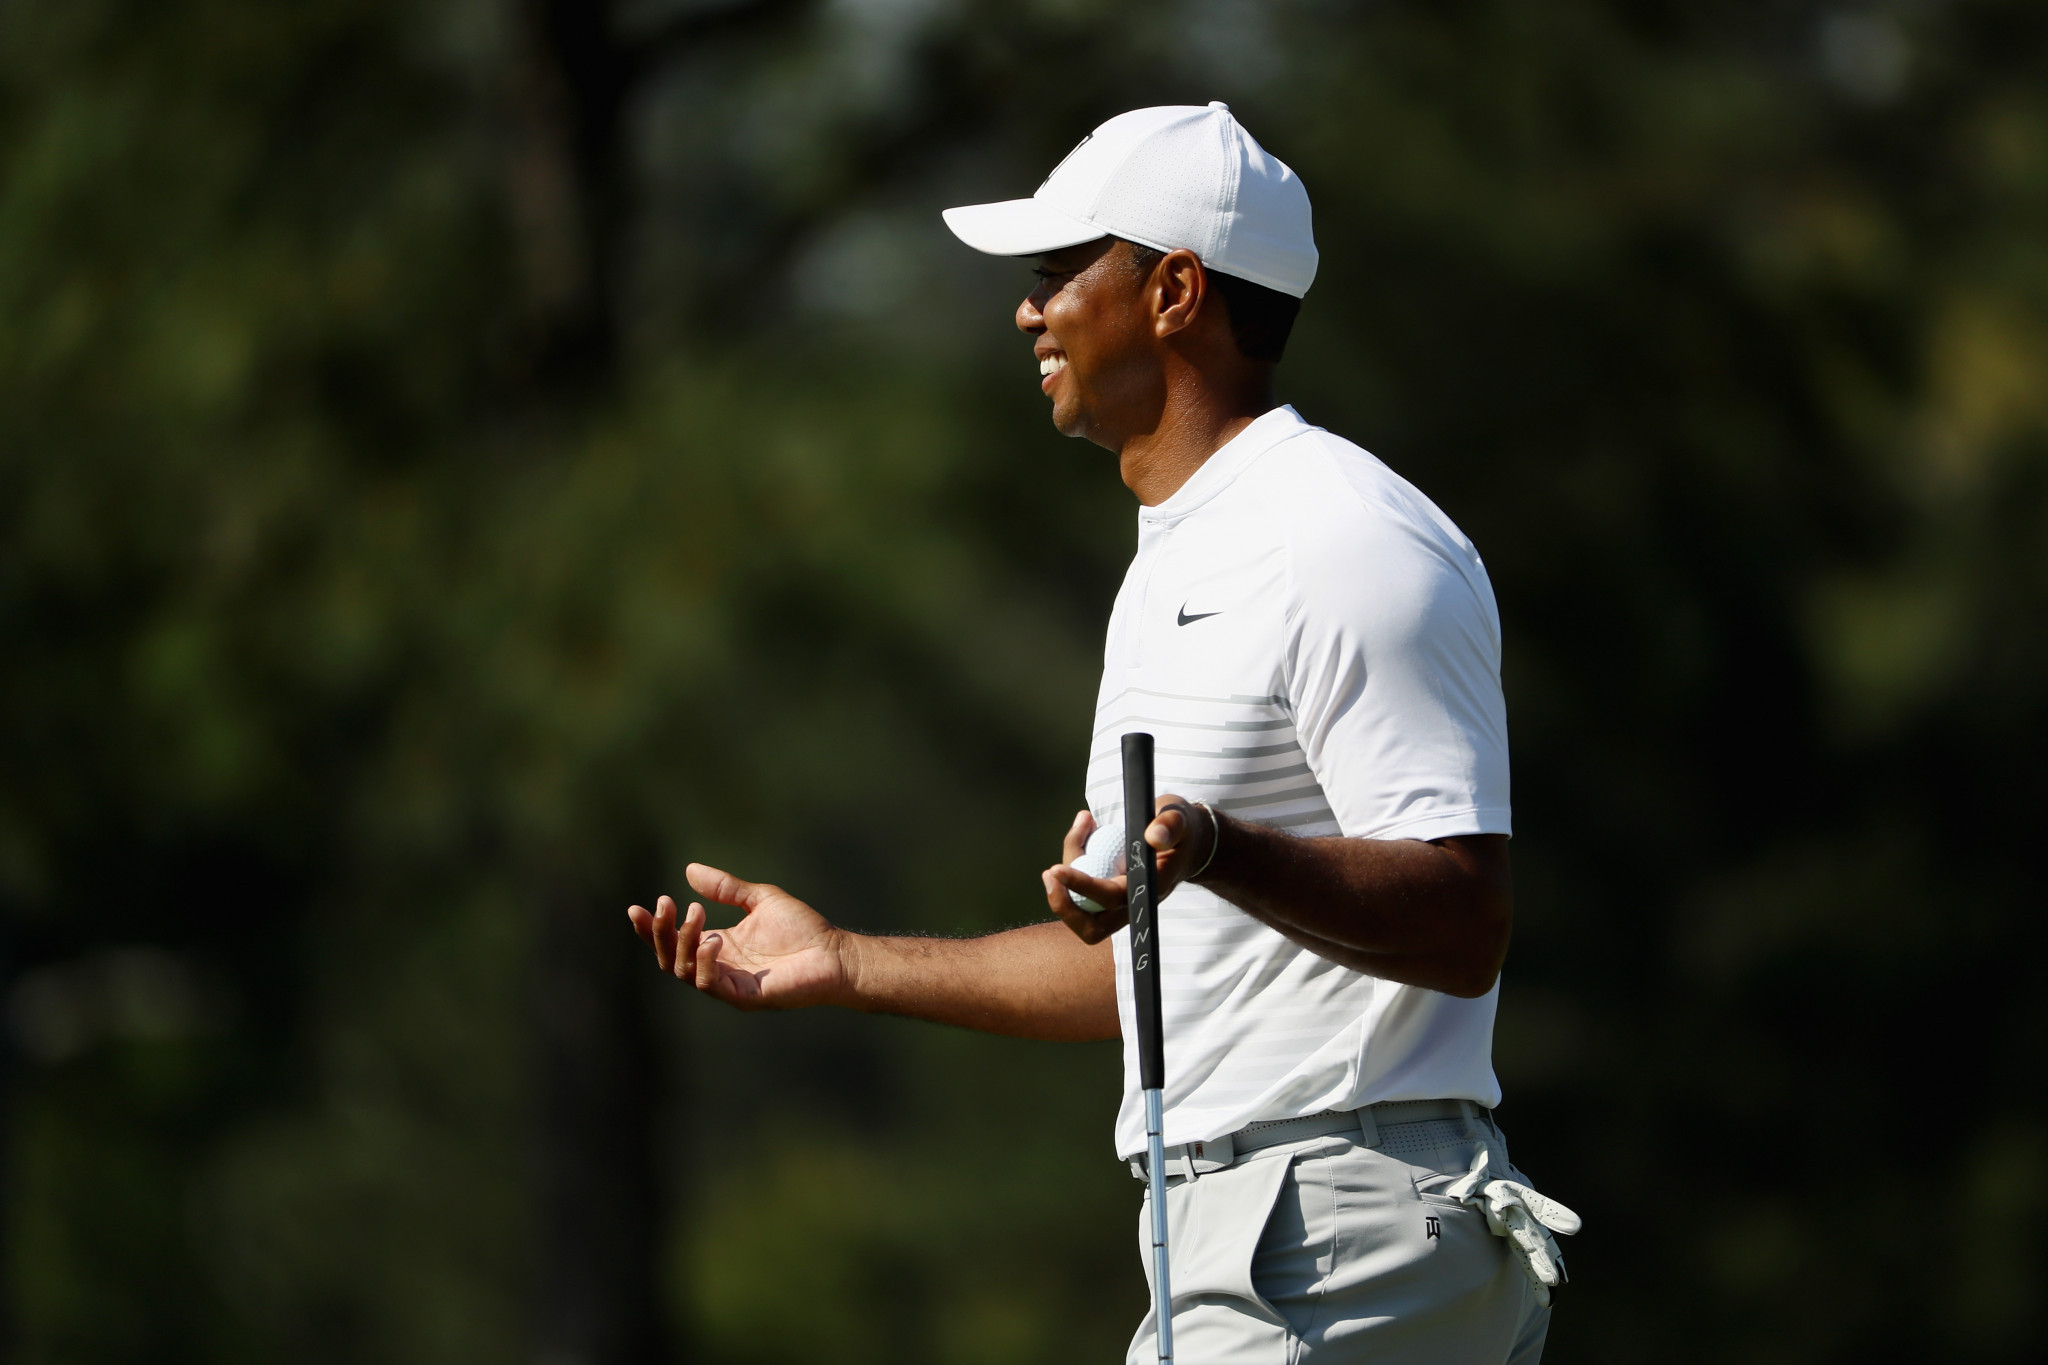 Tiger Woods will play in his first major since 2015 this weekend ©Getty Images